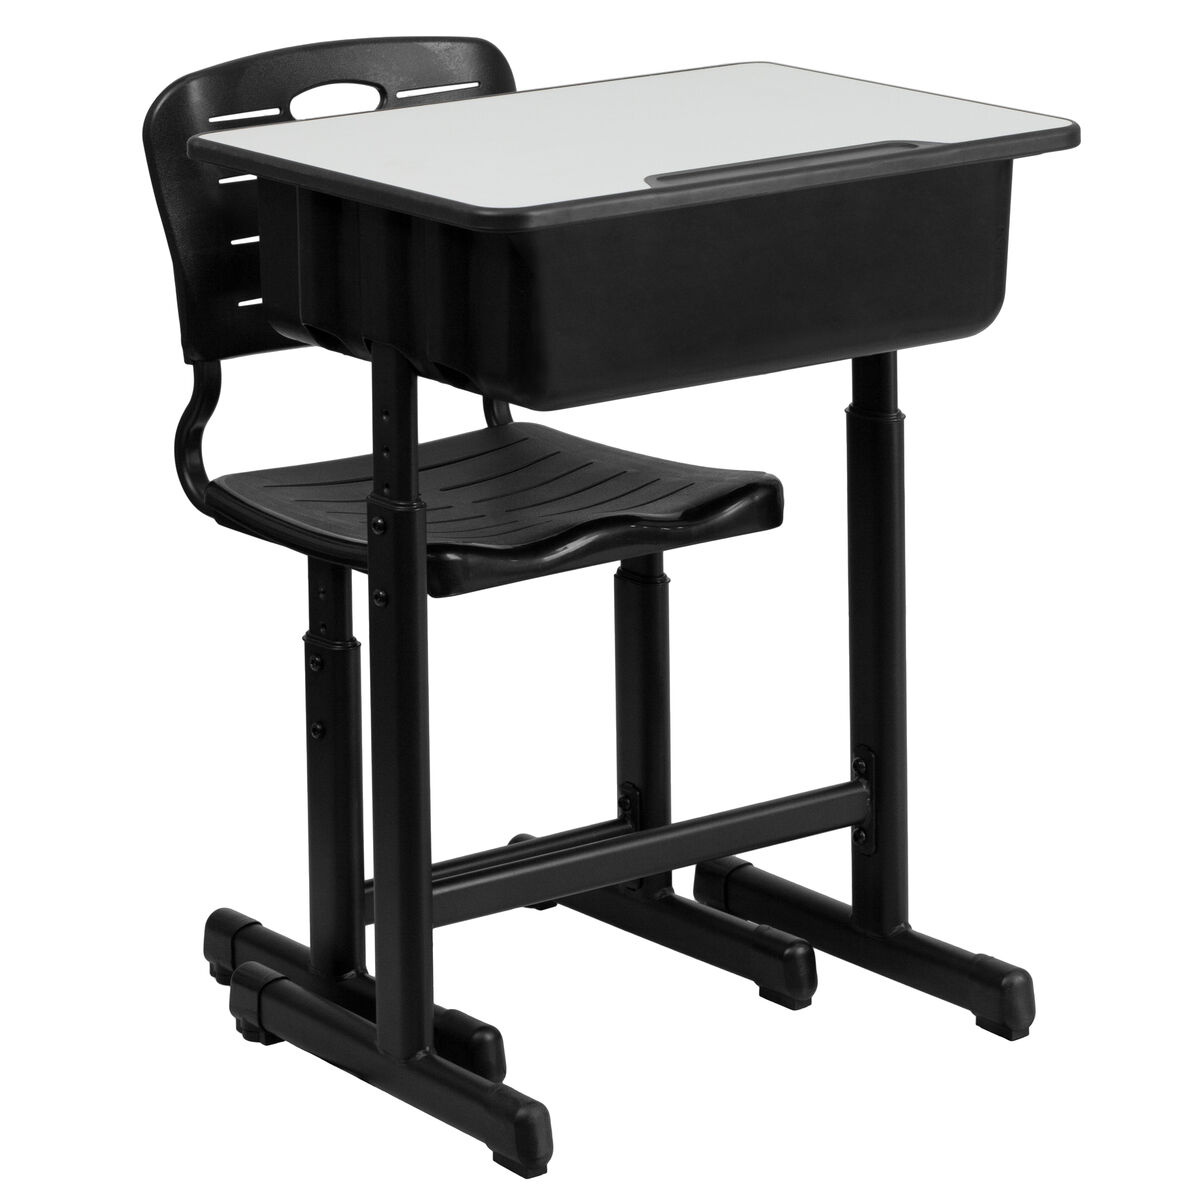 Our Adjule Height Student Desk And Chair With Black Pedestal Frame Is On Now